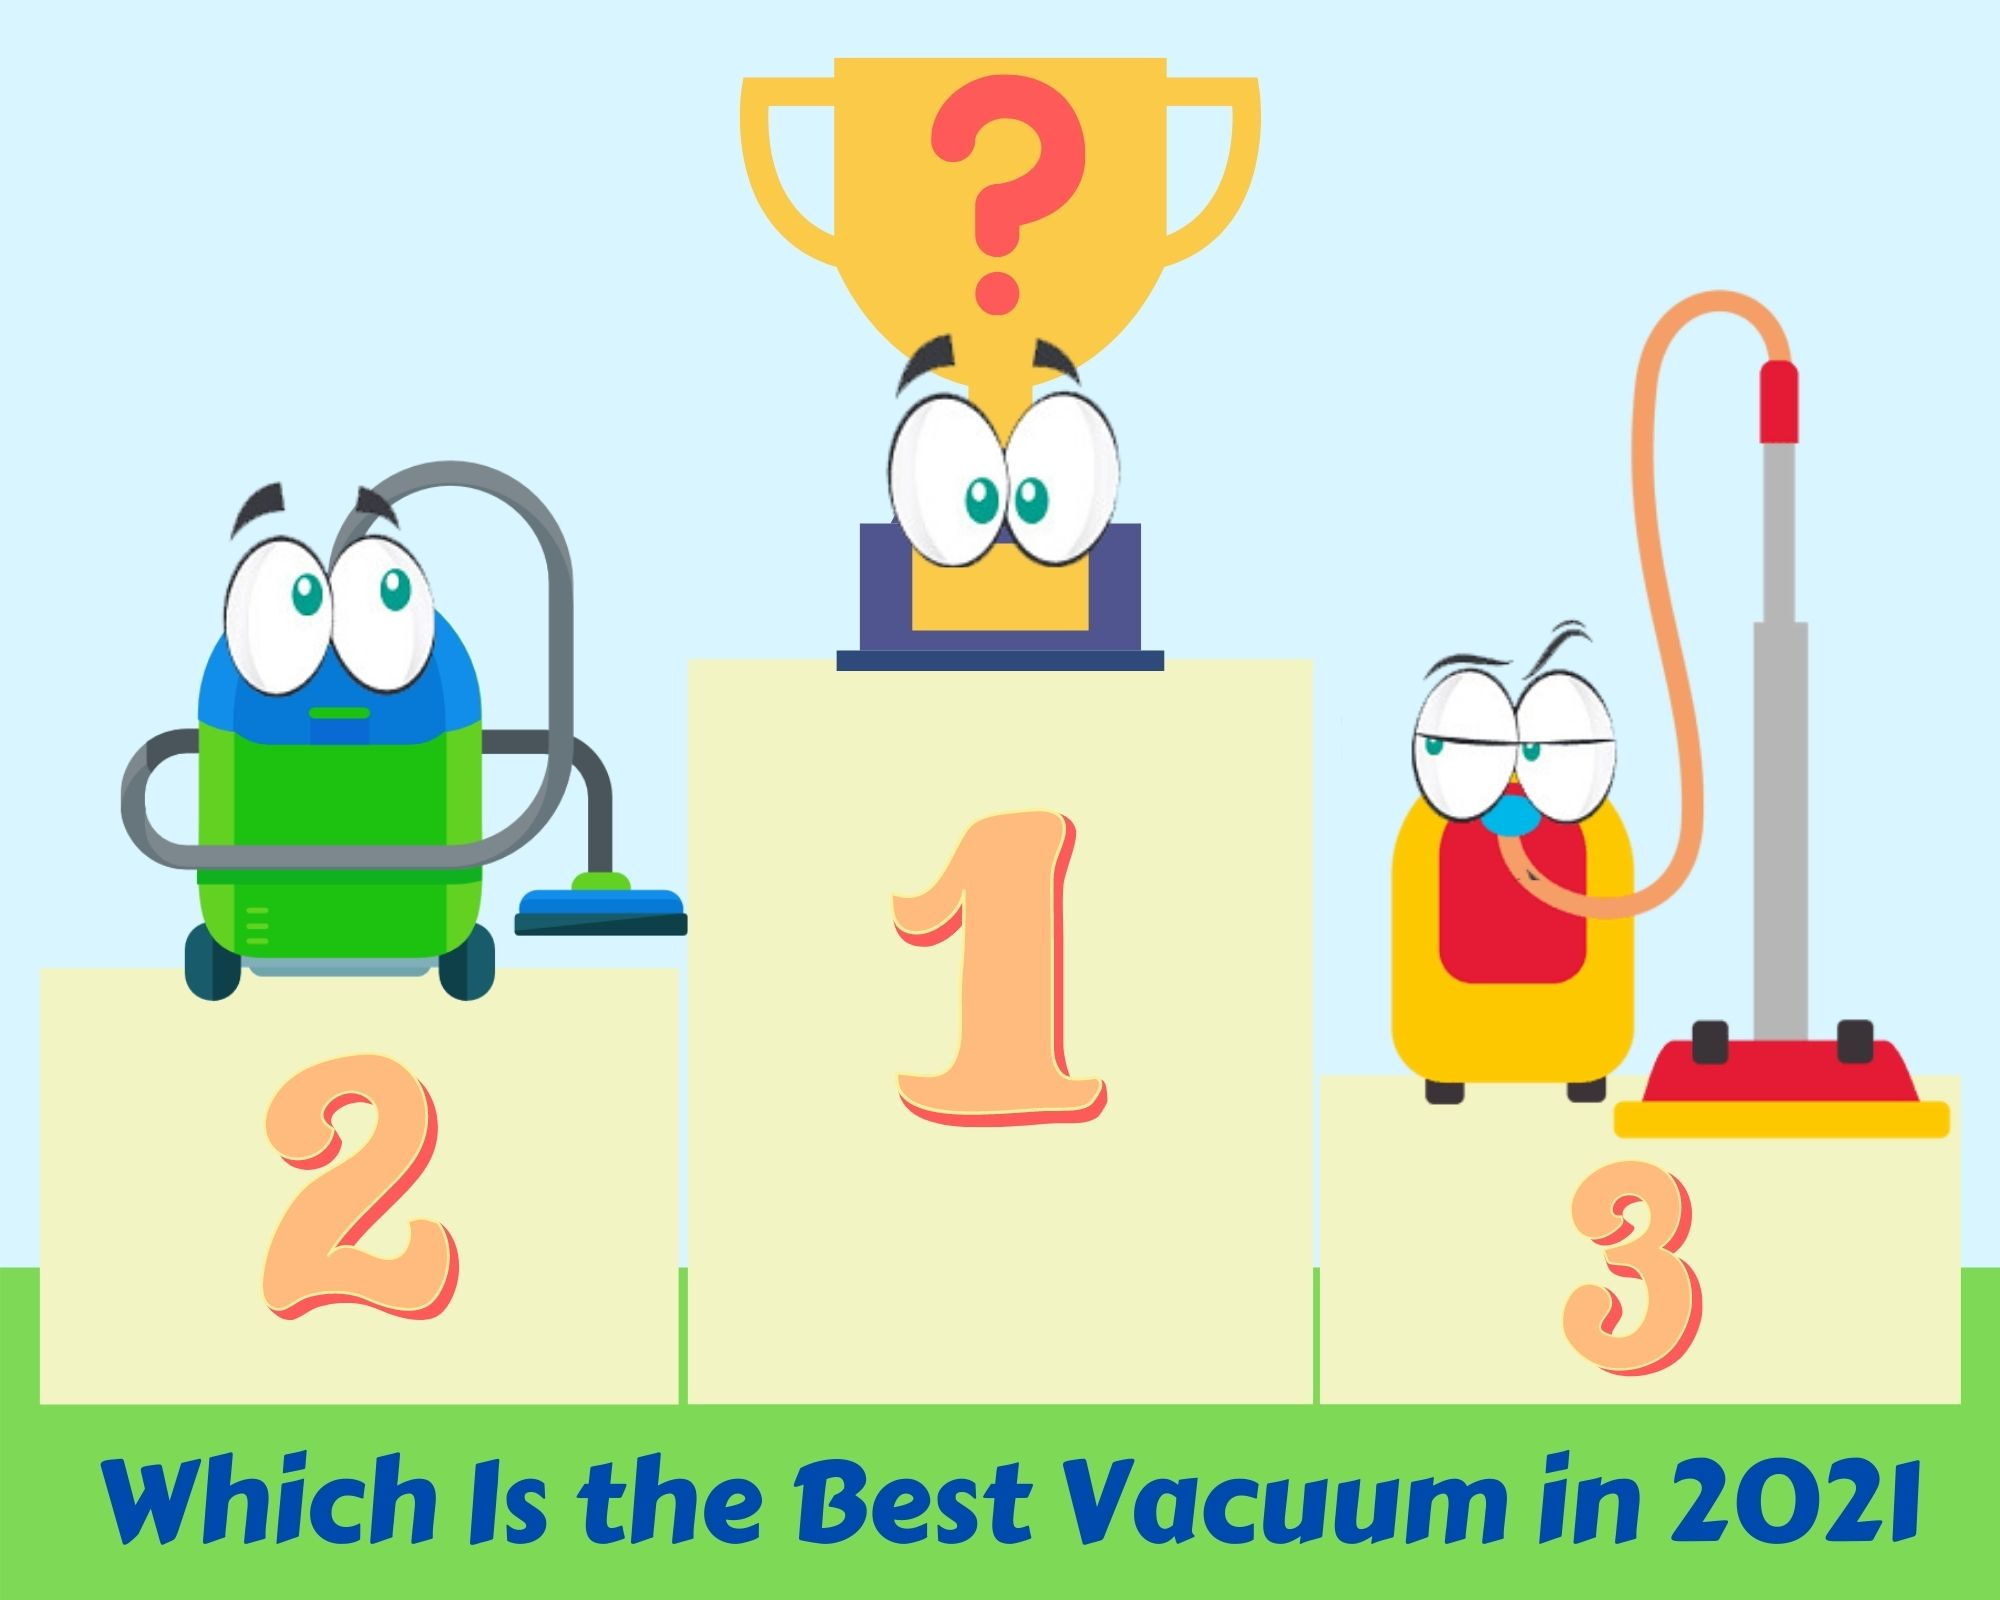 the best vacuums in 2021